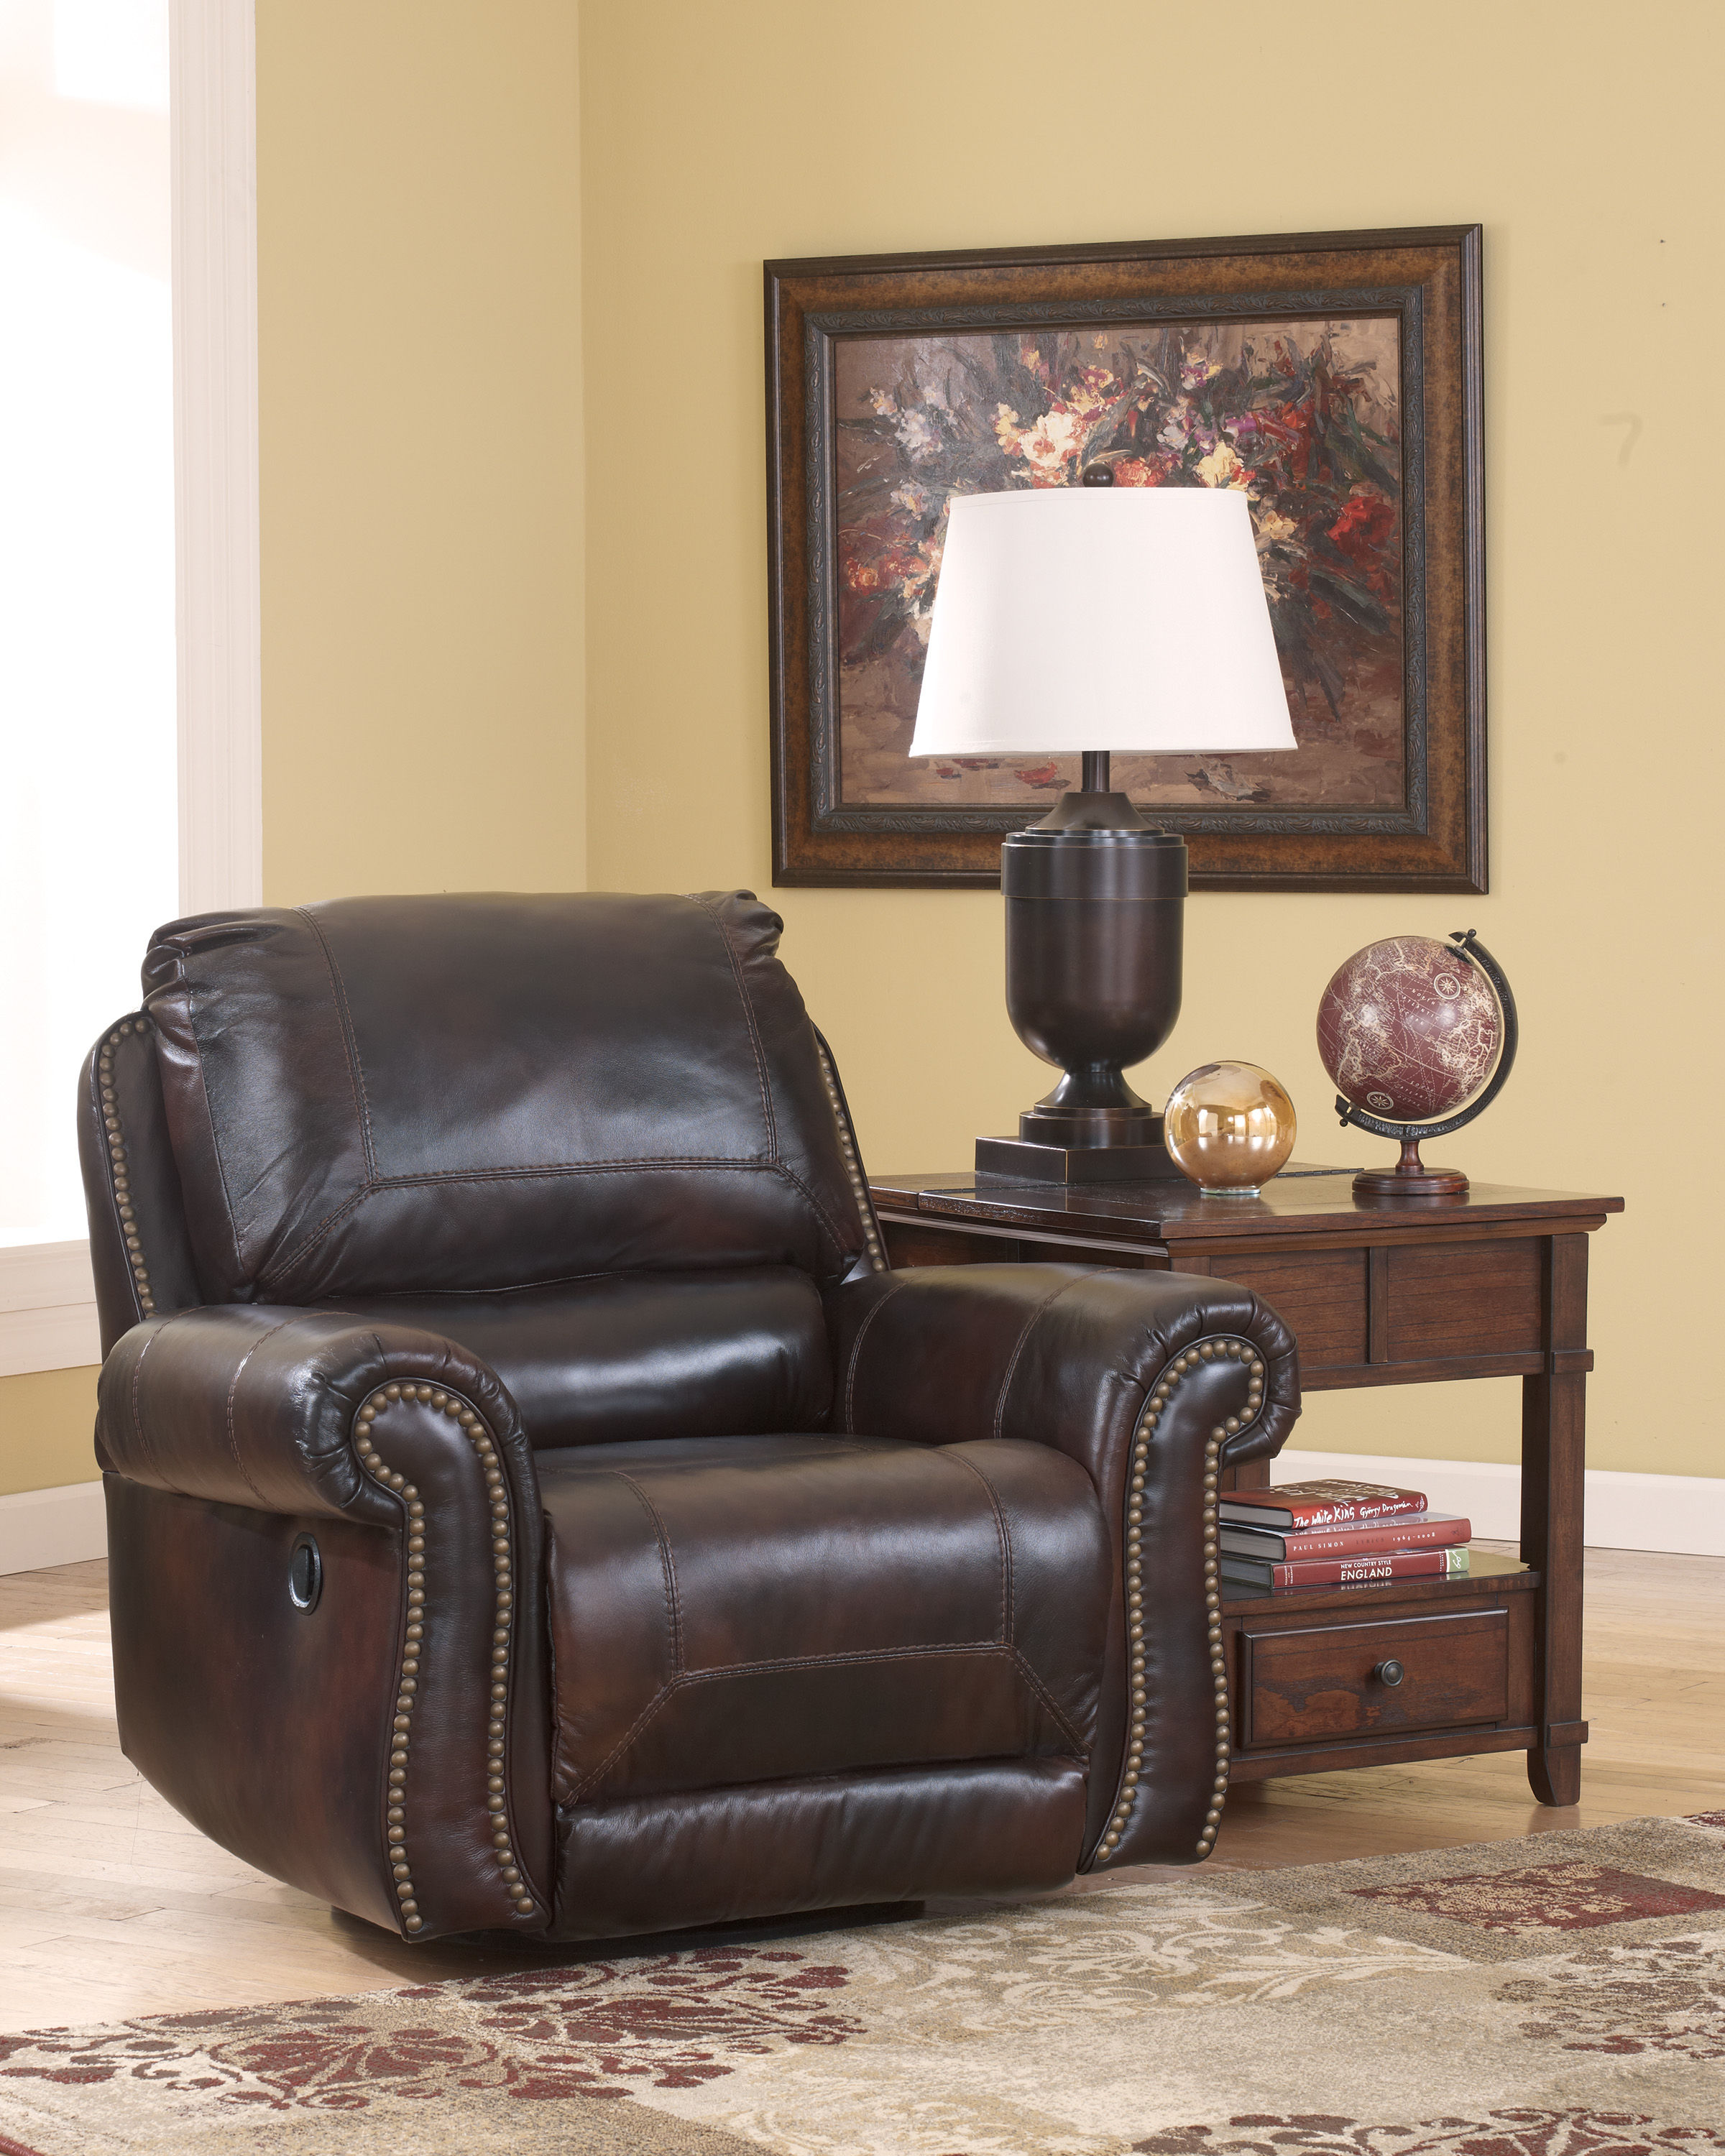 Enjoyable Dexpen Saddle Swivel Glider Recliner The Classy Home Caraccident5 Cool Chair Designs And Ideas Caraccident5Info